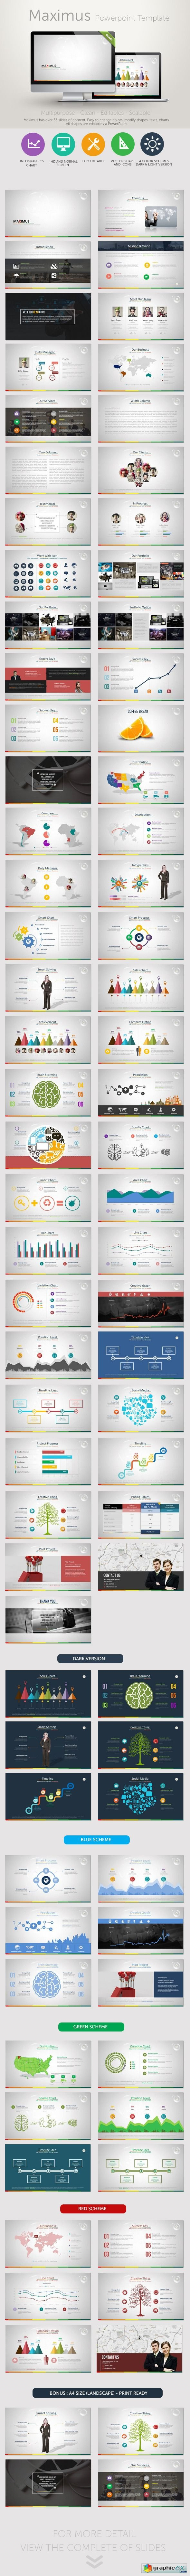 Maximus PowerPoint Presentation Template